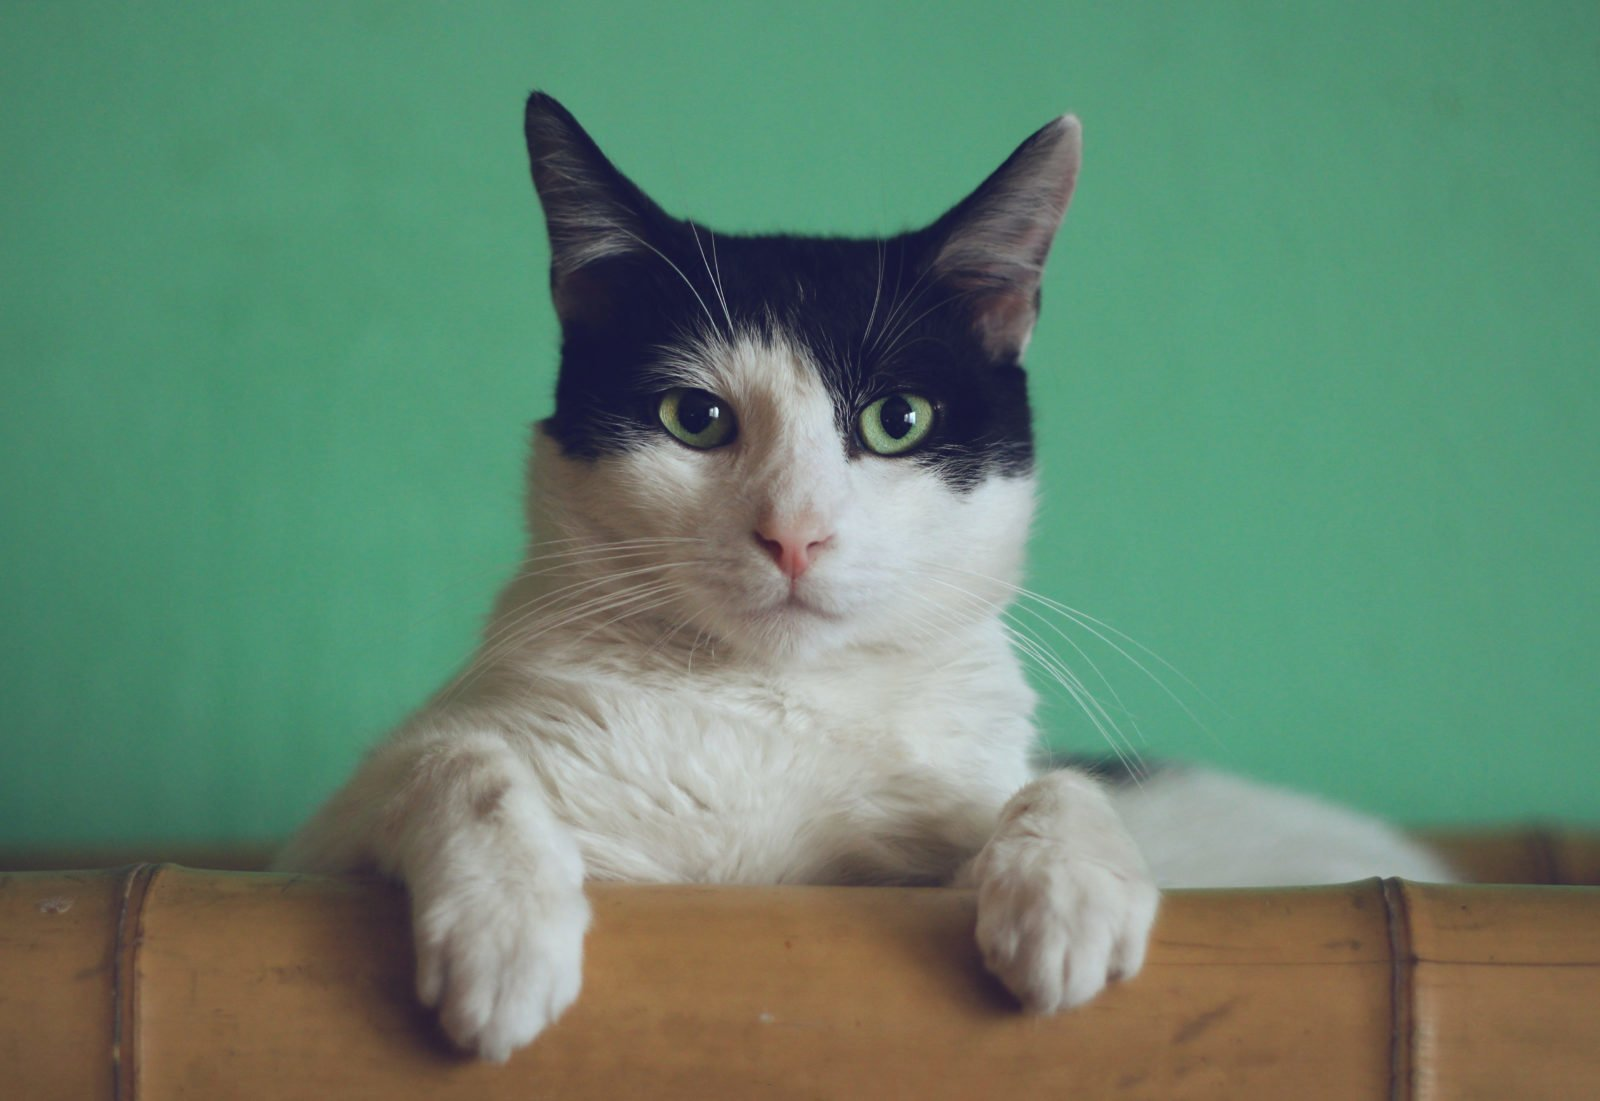 What Breed Is My Cat? - tuxedo bicolor